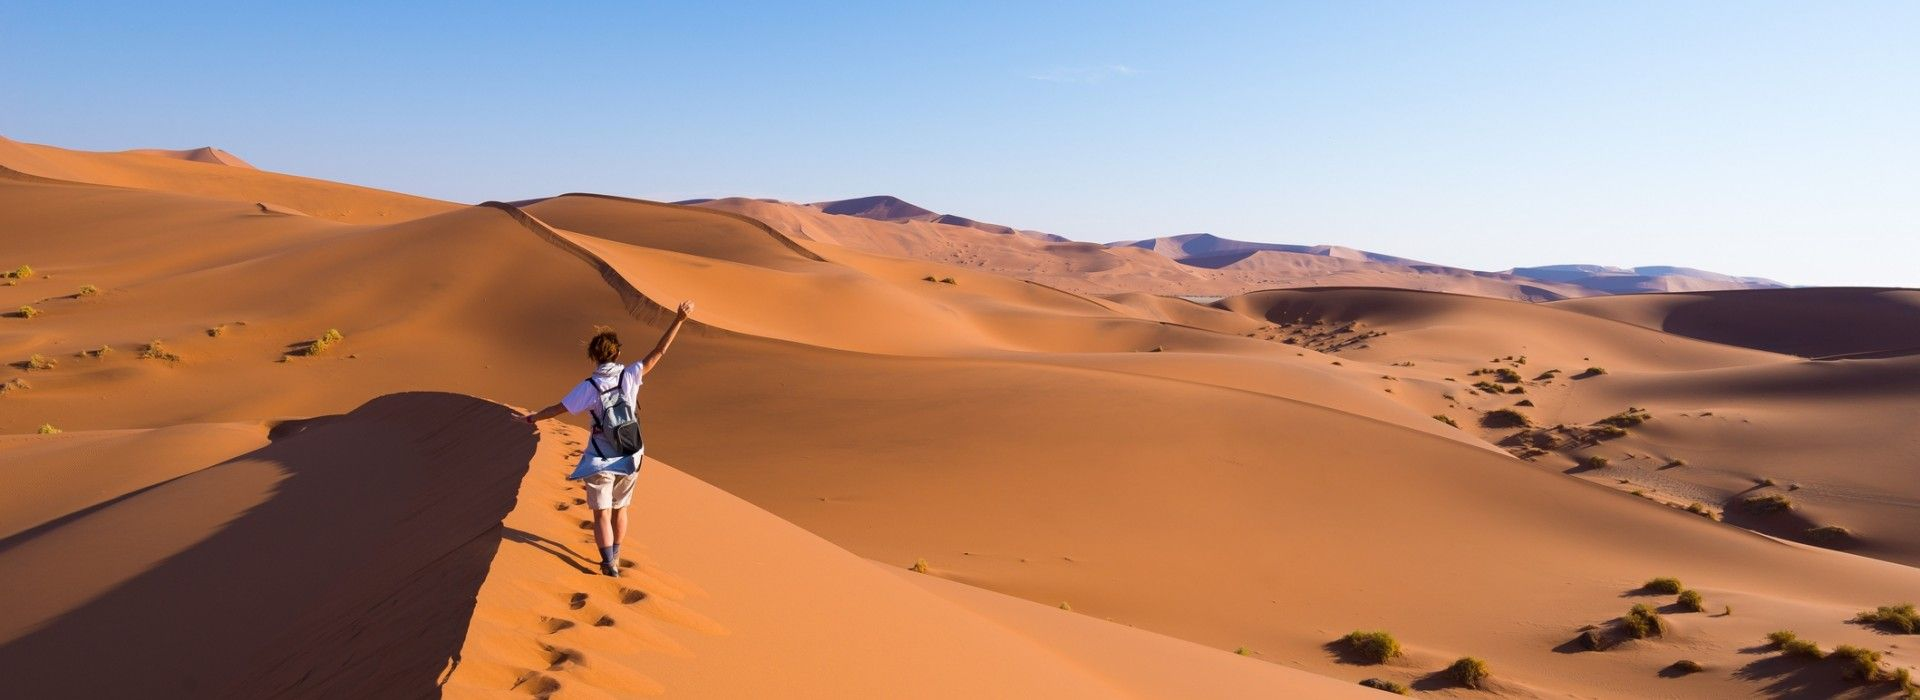 Wildlife, landscapes and nature Tours in Namibia